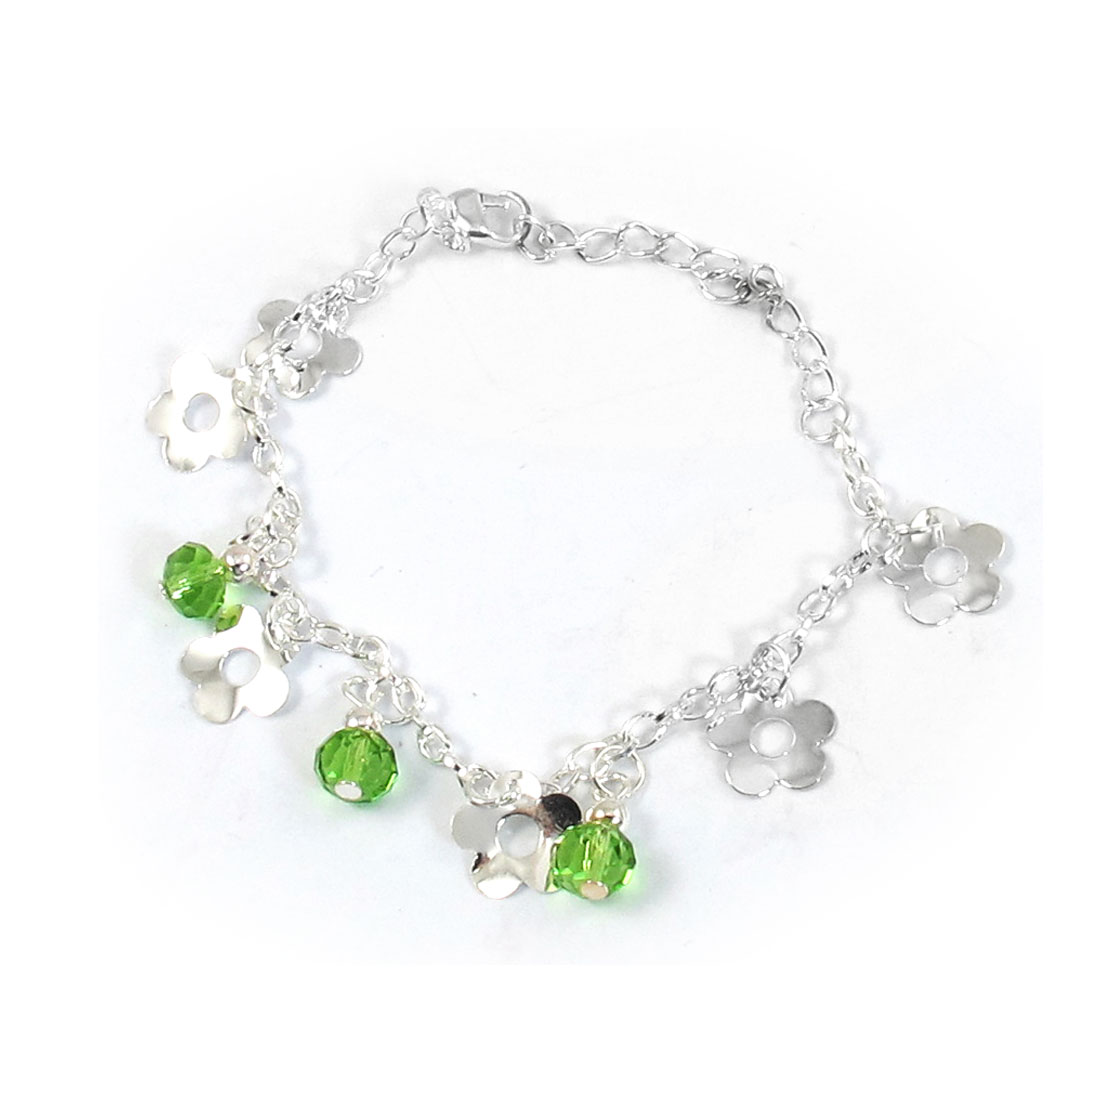 Green Floral Beads Pendant Chain Bracelet for Ladies